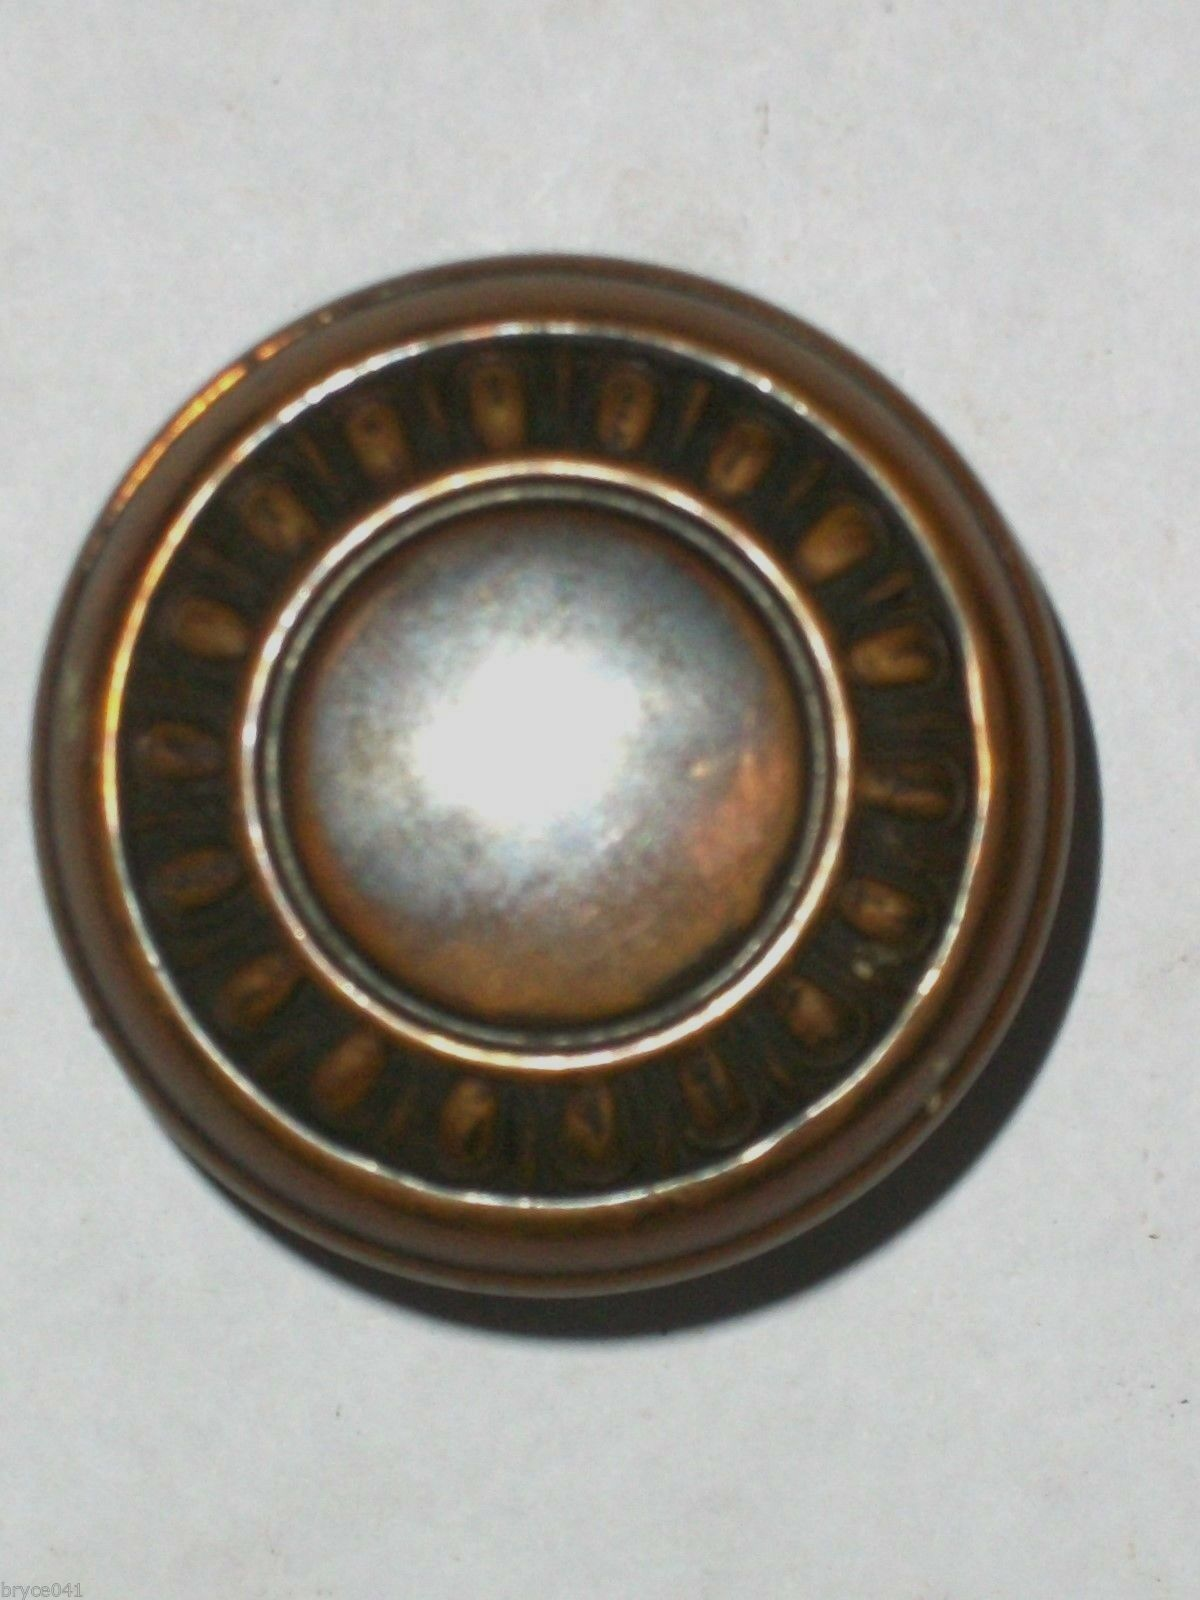 Antique Victoria Egg & Dart Design Door Knob